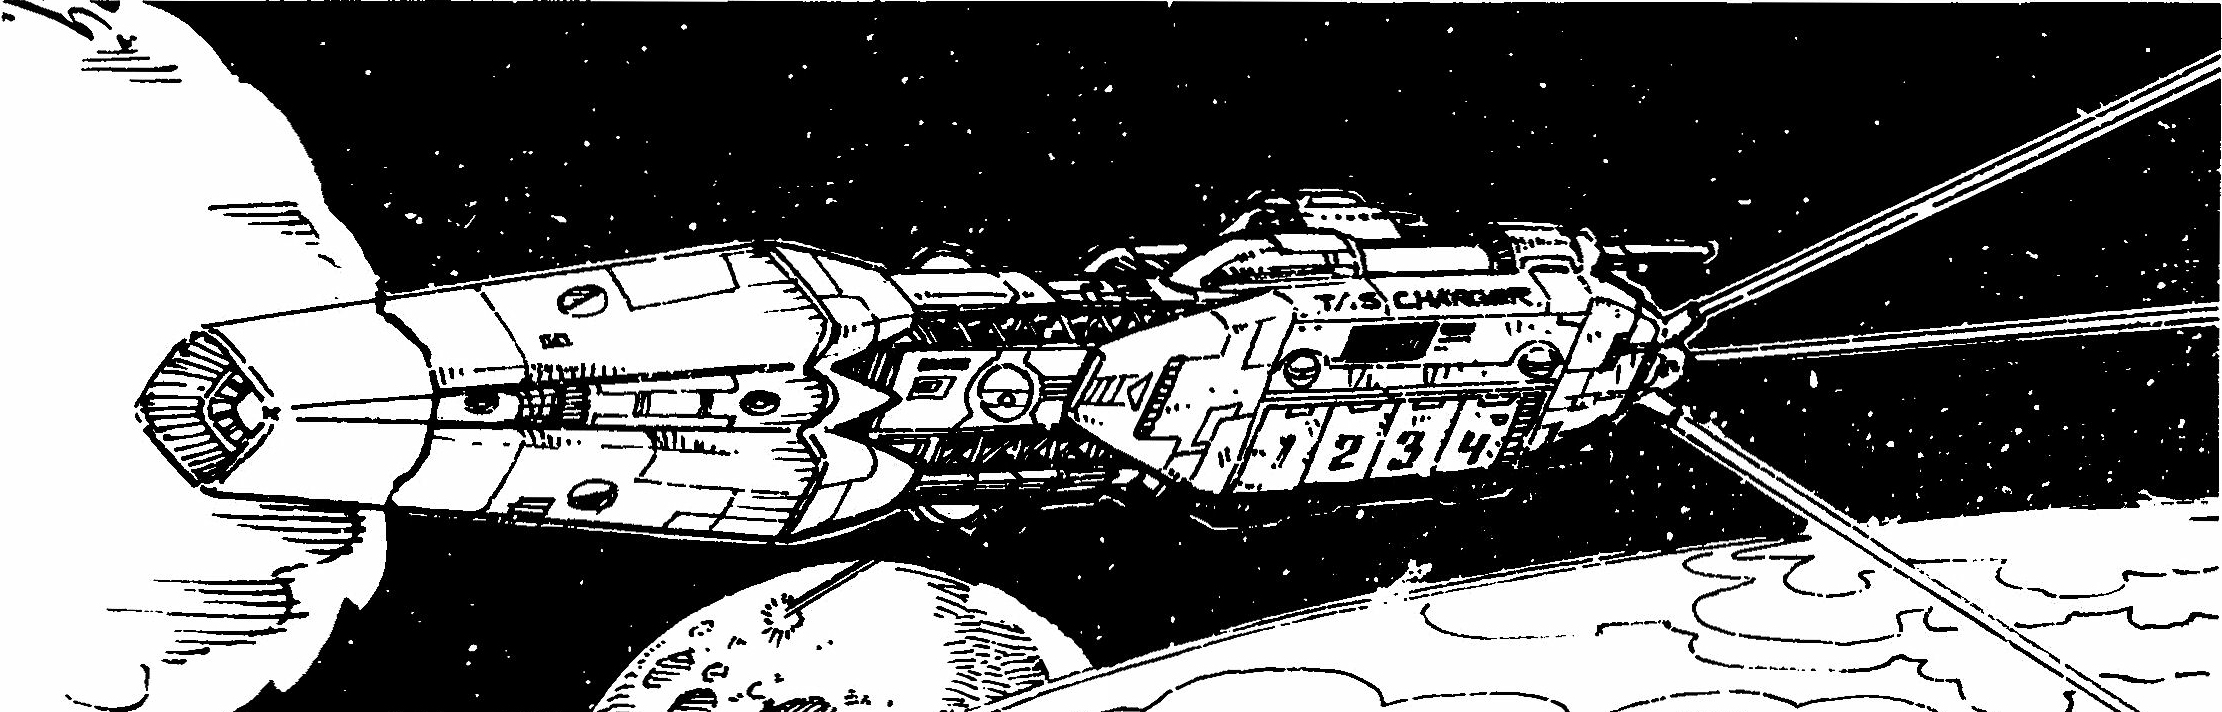 wolfs shipyard forum view topic battletech aquilla jumpship or charger warship wolf s shipyard